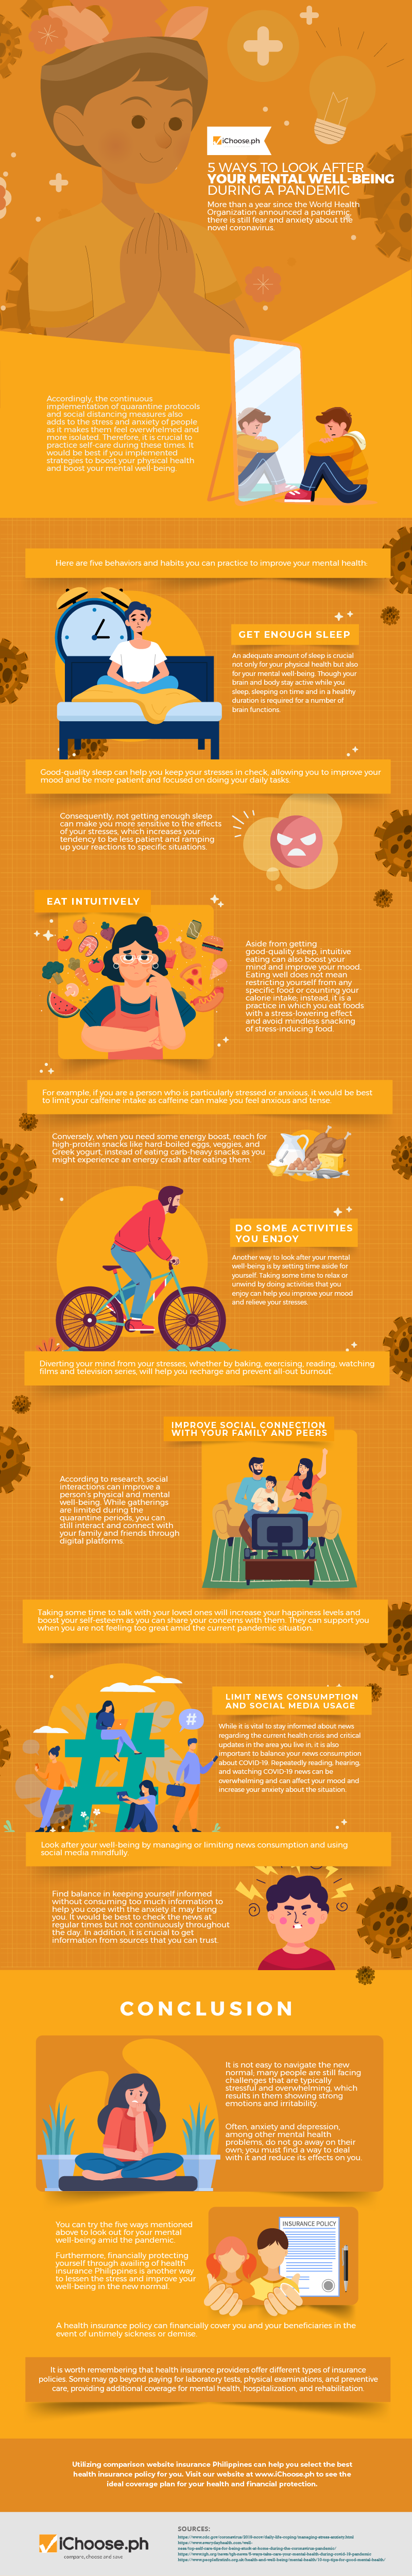 5-Ways-to-Look-After-Your-Mental-Well-Being-During-a-Pandemic-Infographic